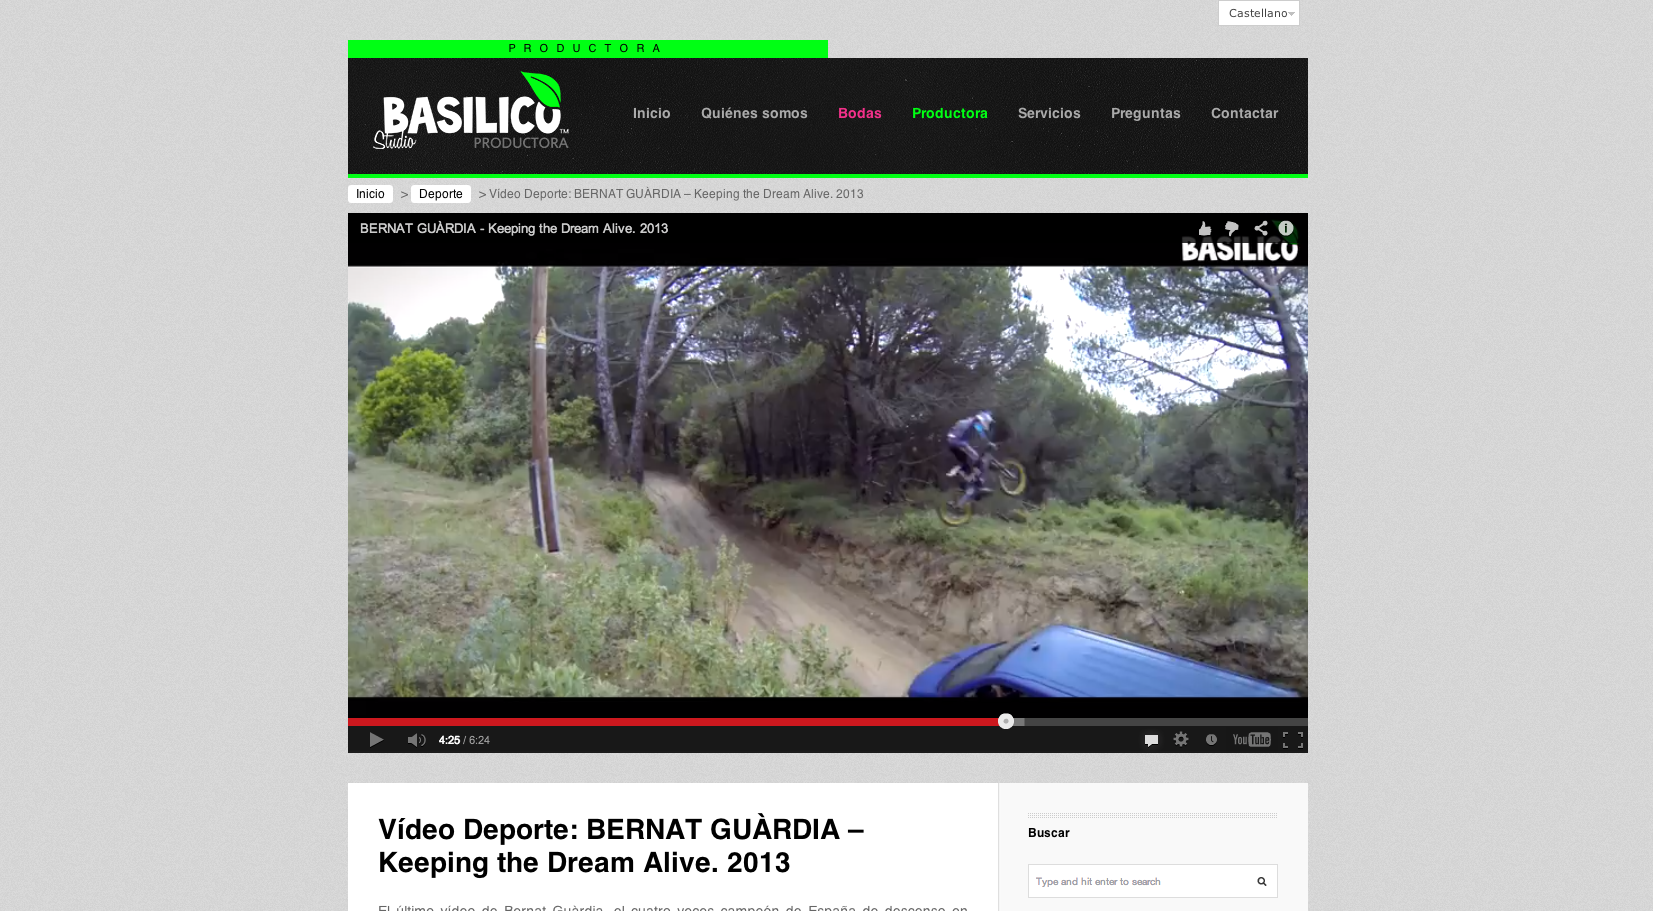 Vídeo Deporte: BERNAT GUÀRDIA - Keeping the Dream Alive. 2013 - BasilicoStudio